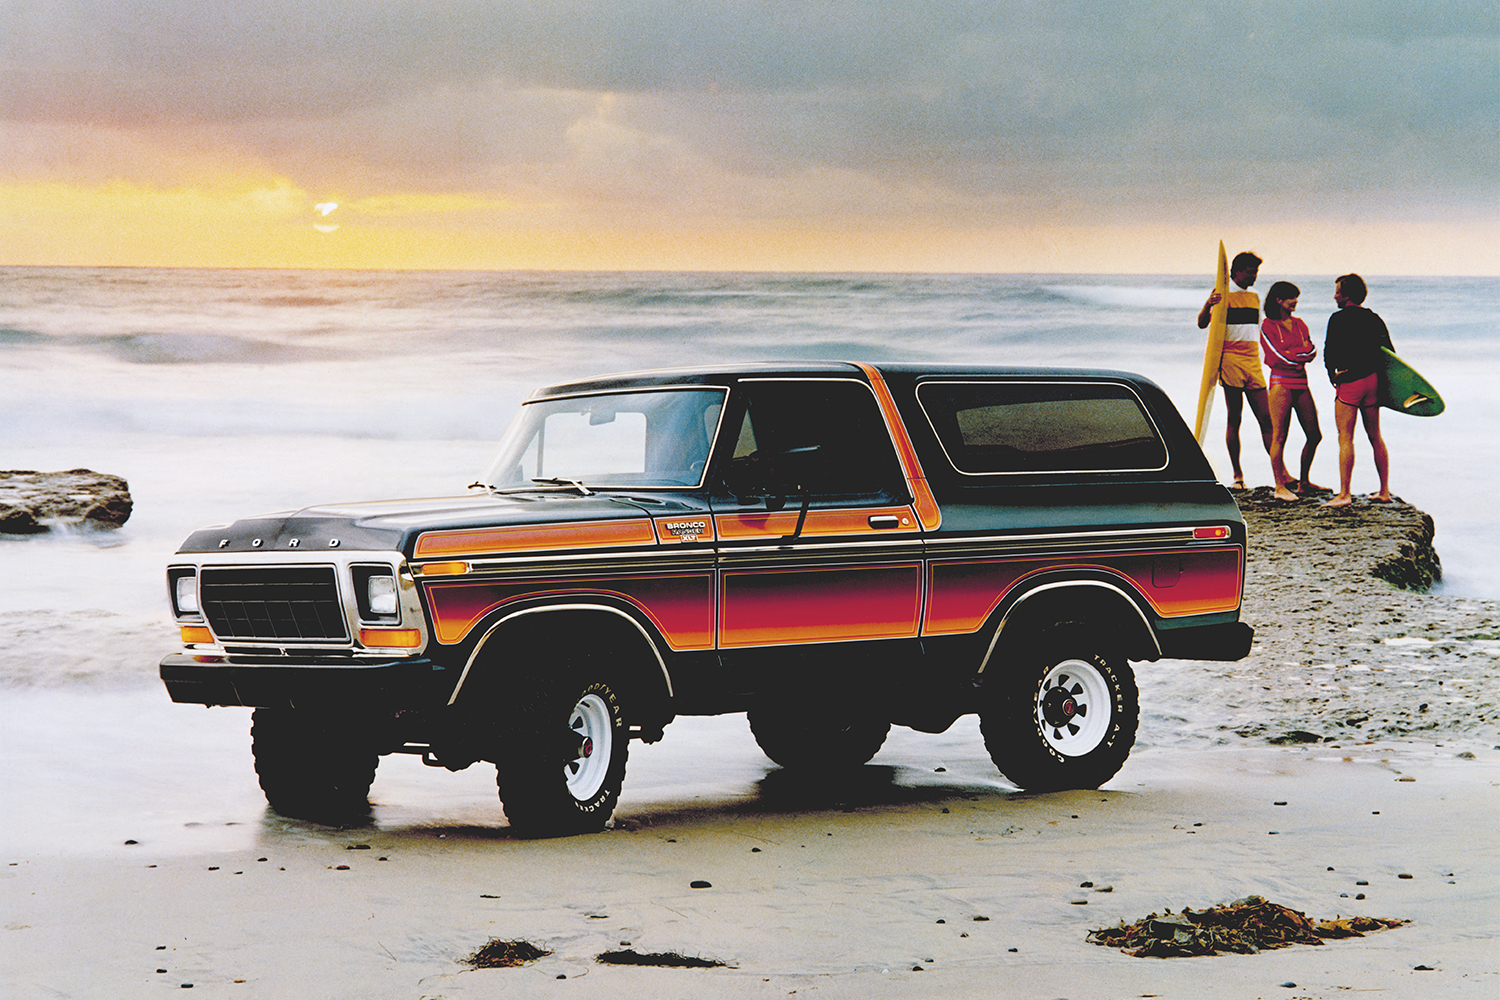 1979 Ford Bronco on the beach